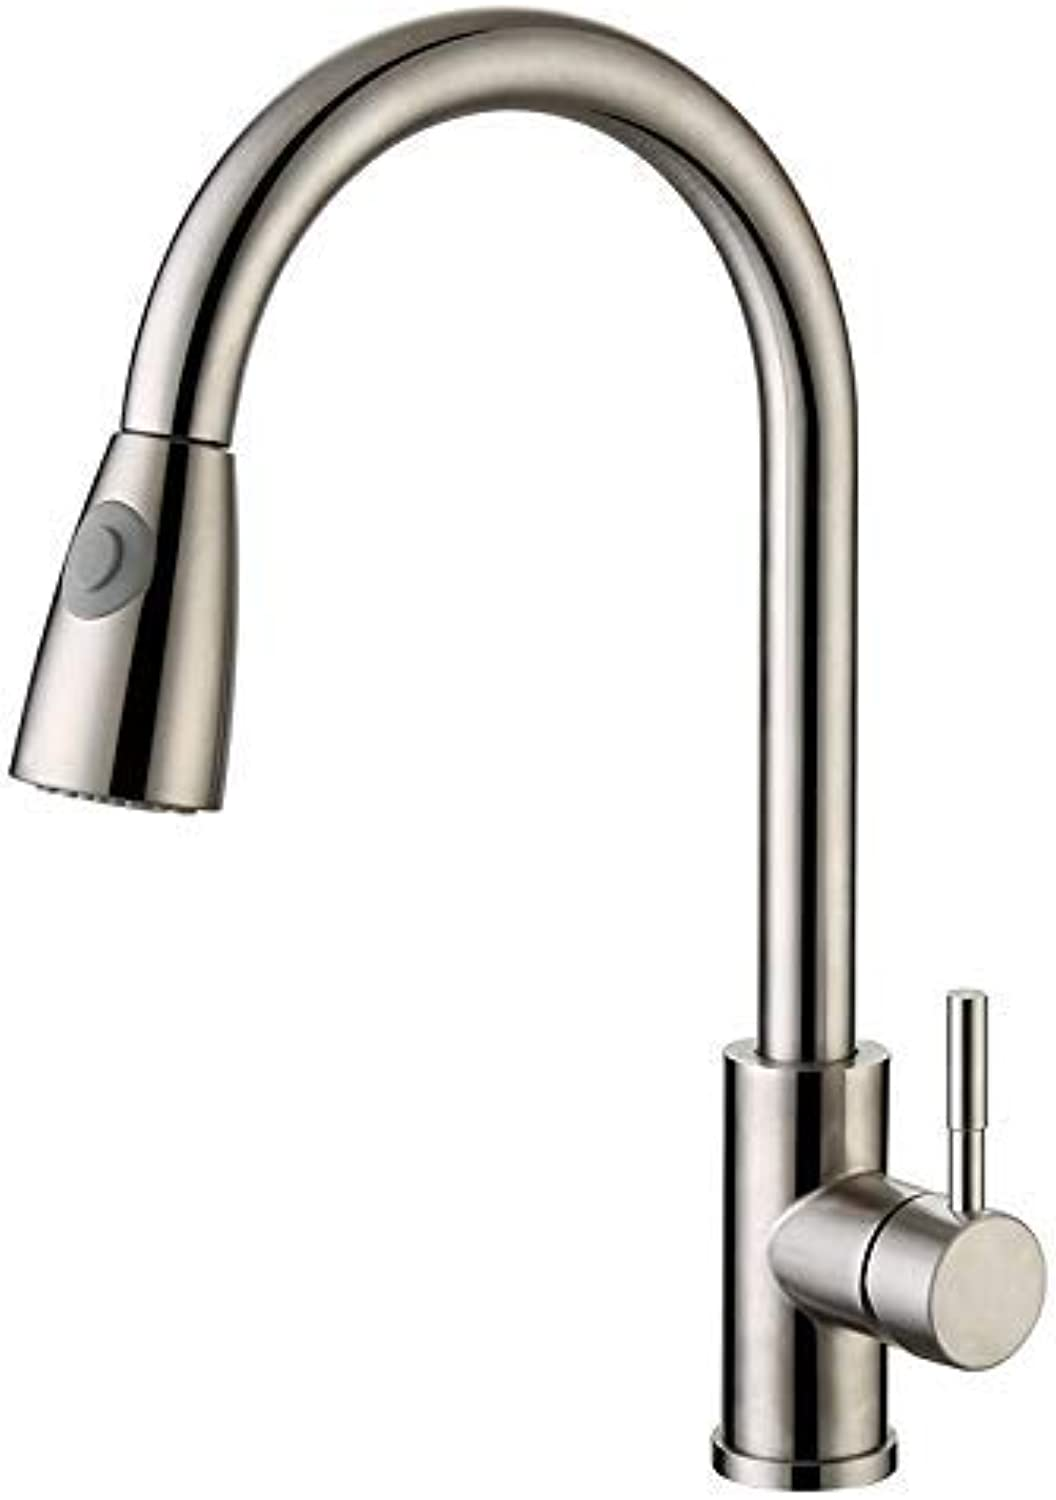 Oudan 304 Stainless Steel Kitchen Faucet Sink Faucet Caipen Hot and Cold Water Faucet Two Tranches (color   -, Size   -)